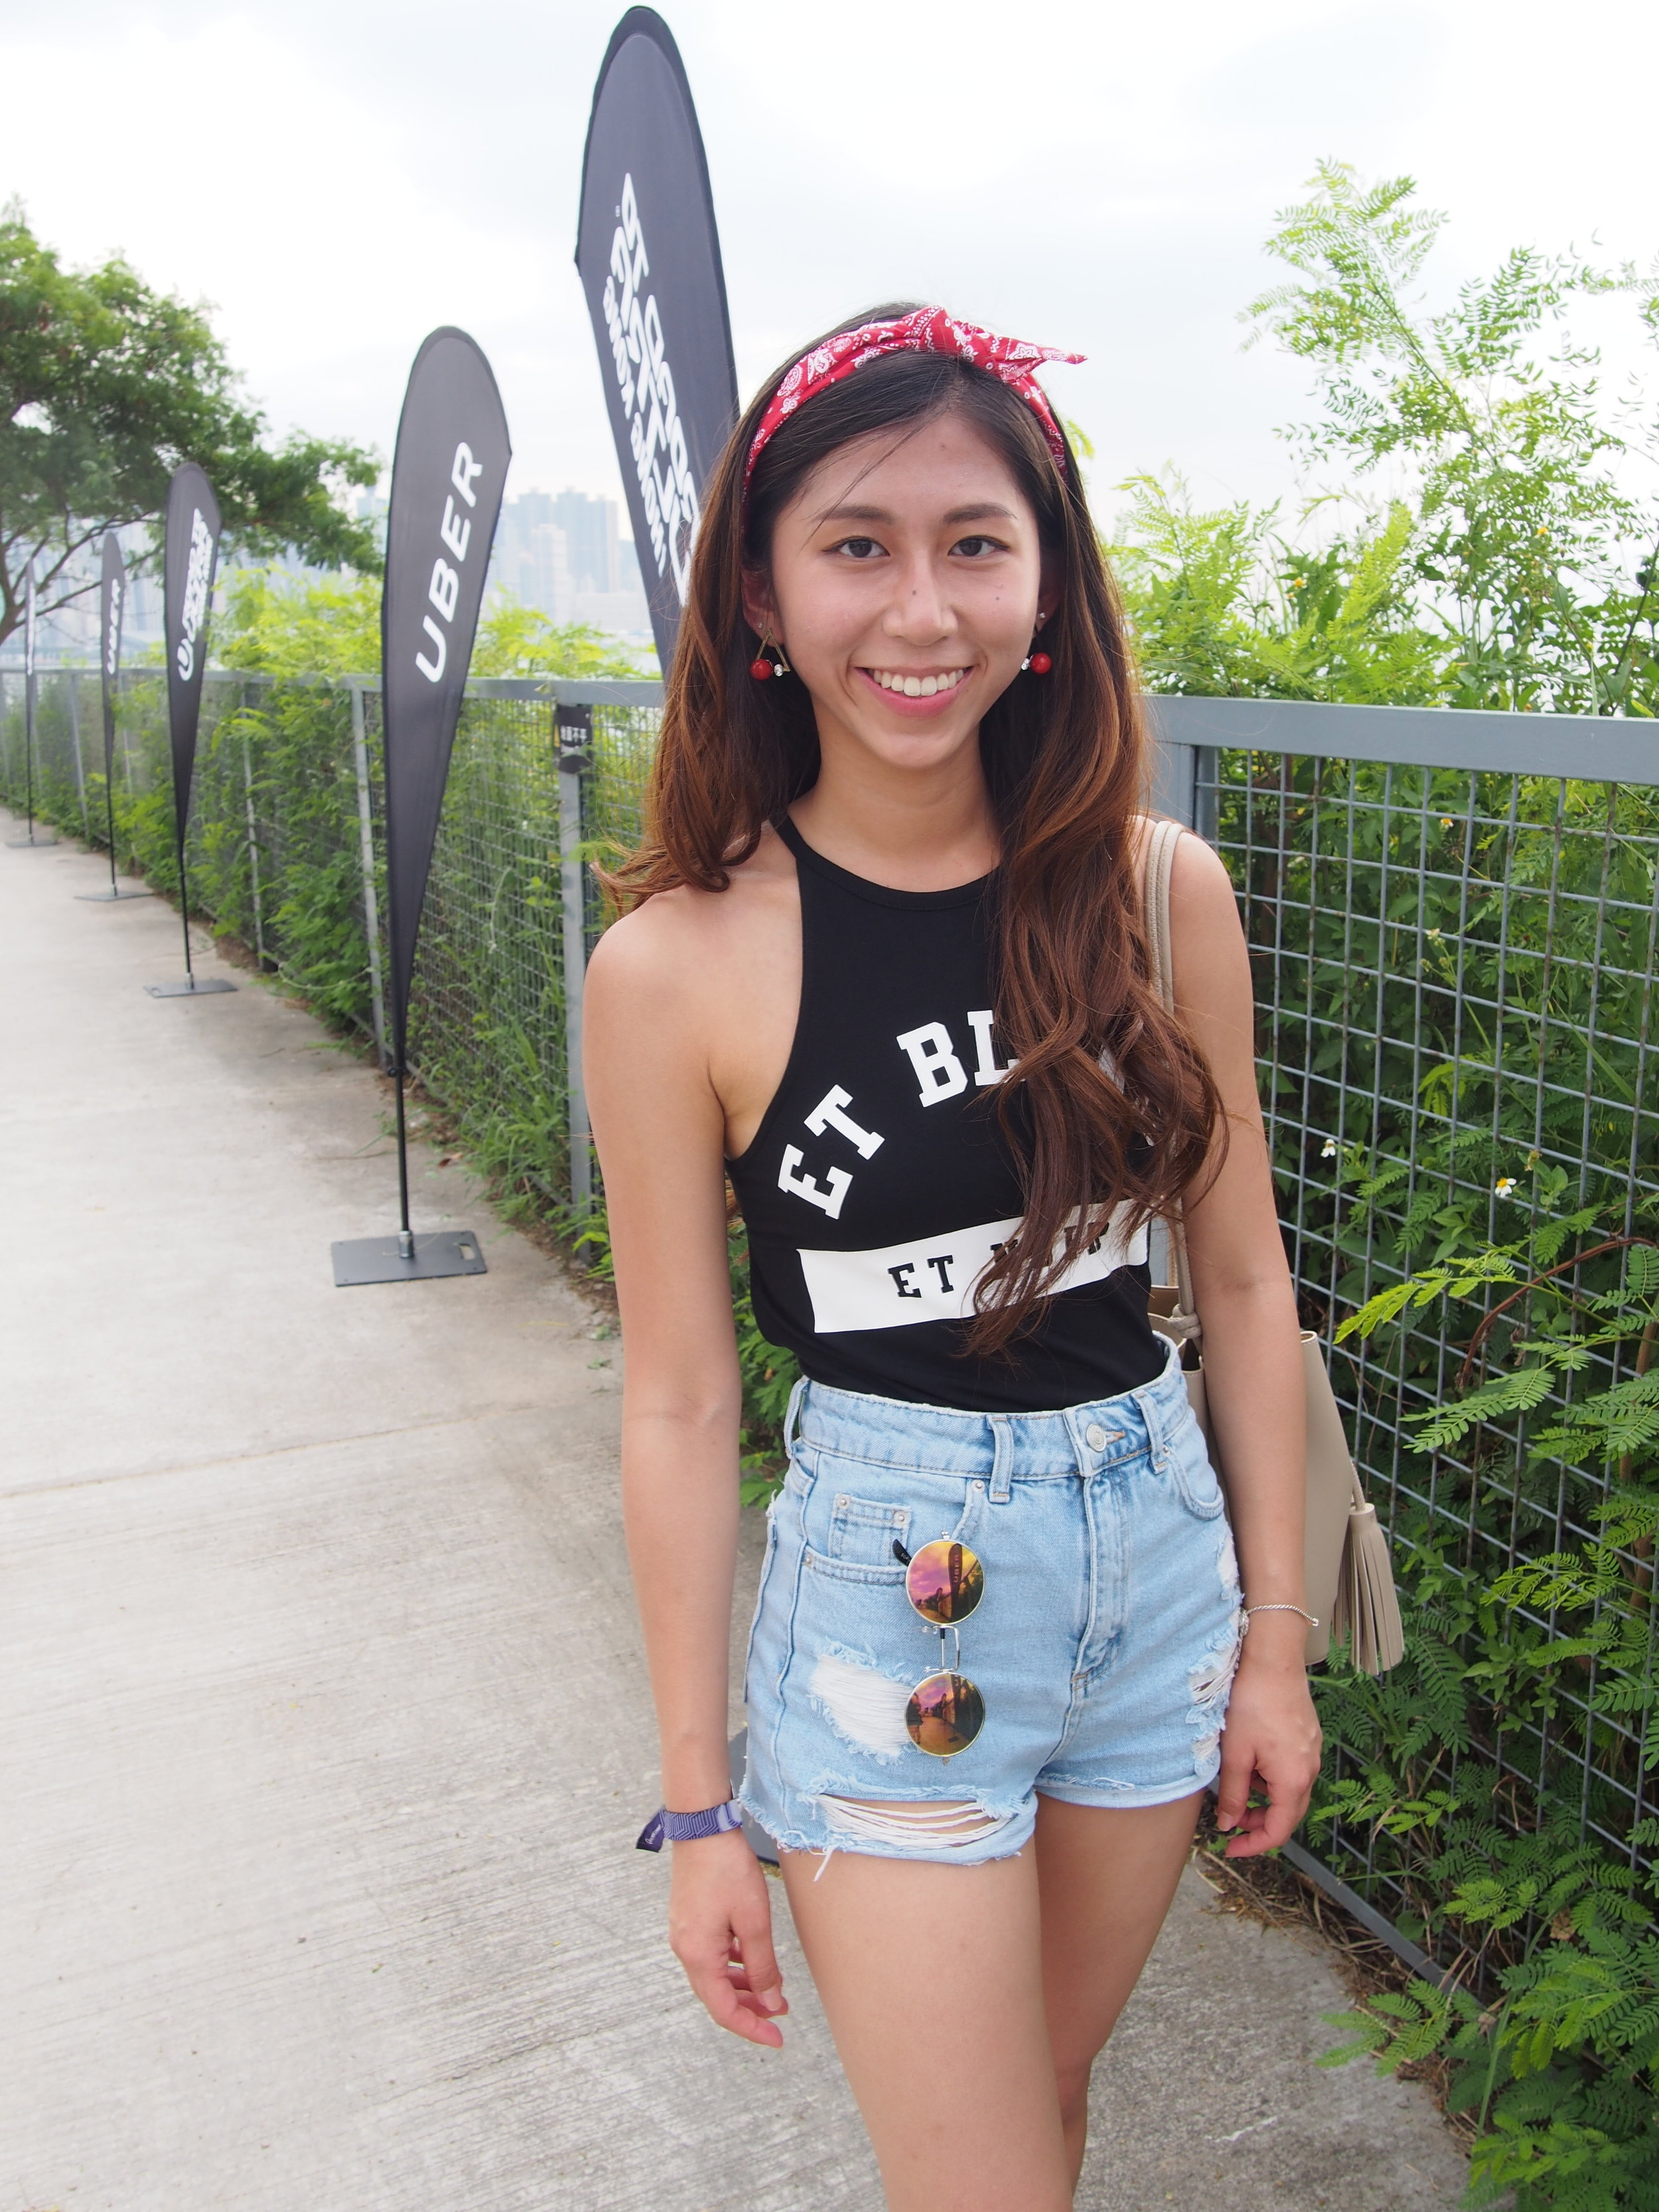 On me: Topshop cut-out bodysuit / Topshop denim shorts / Red bow / Charles&Keith beige bucket